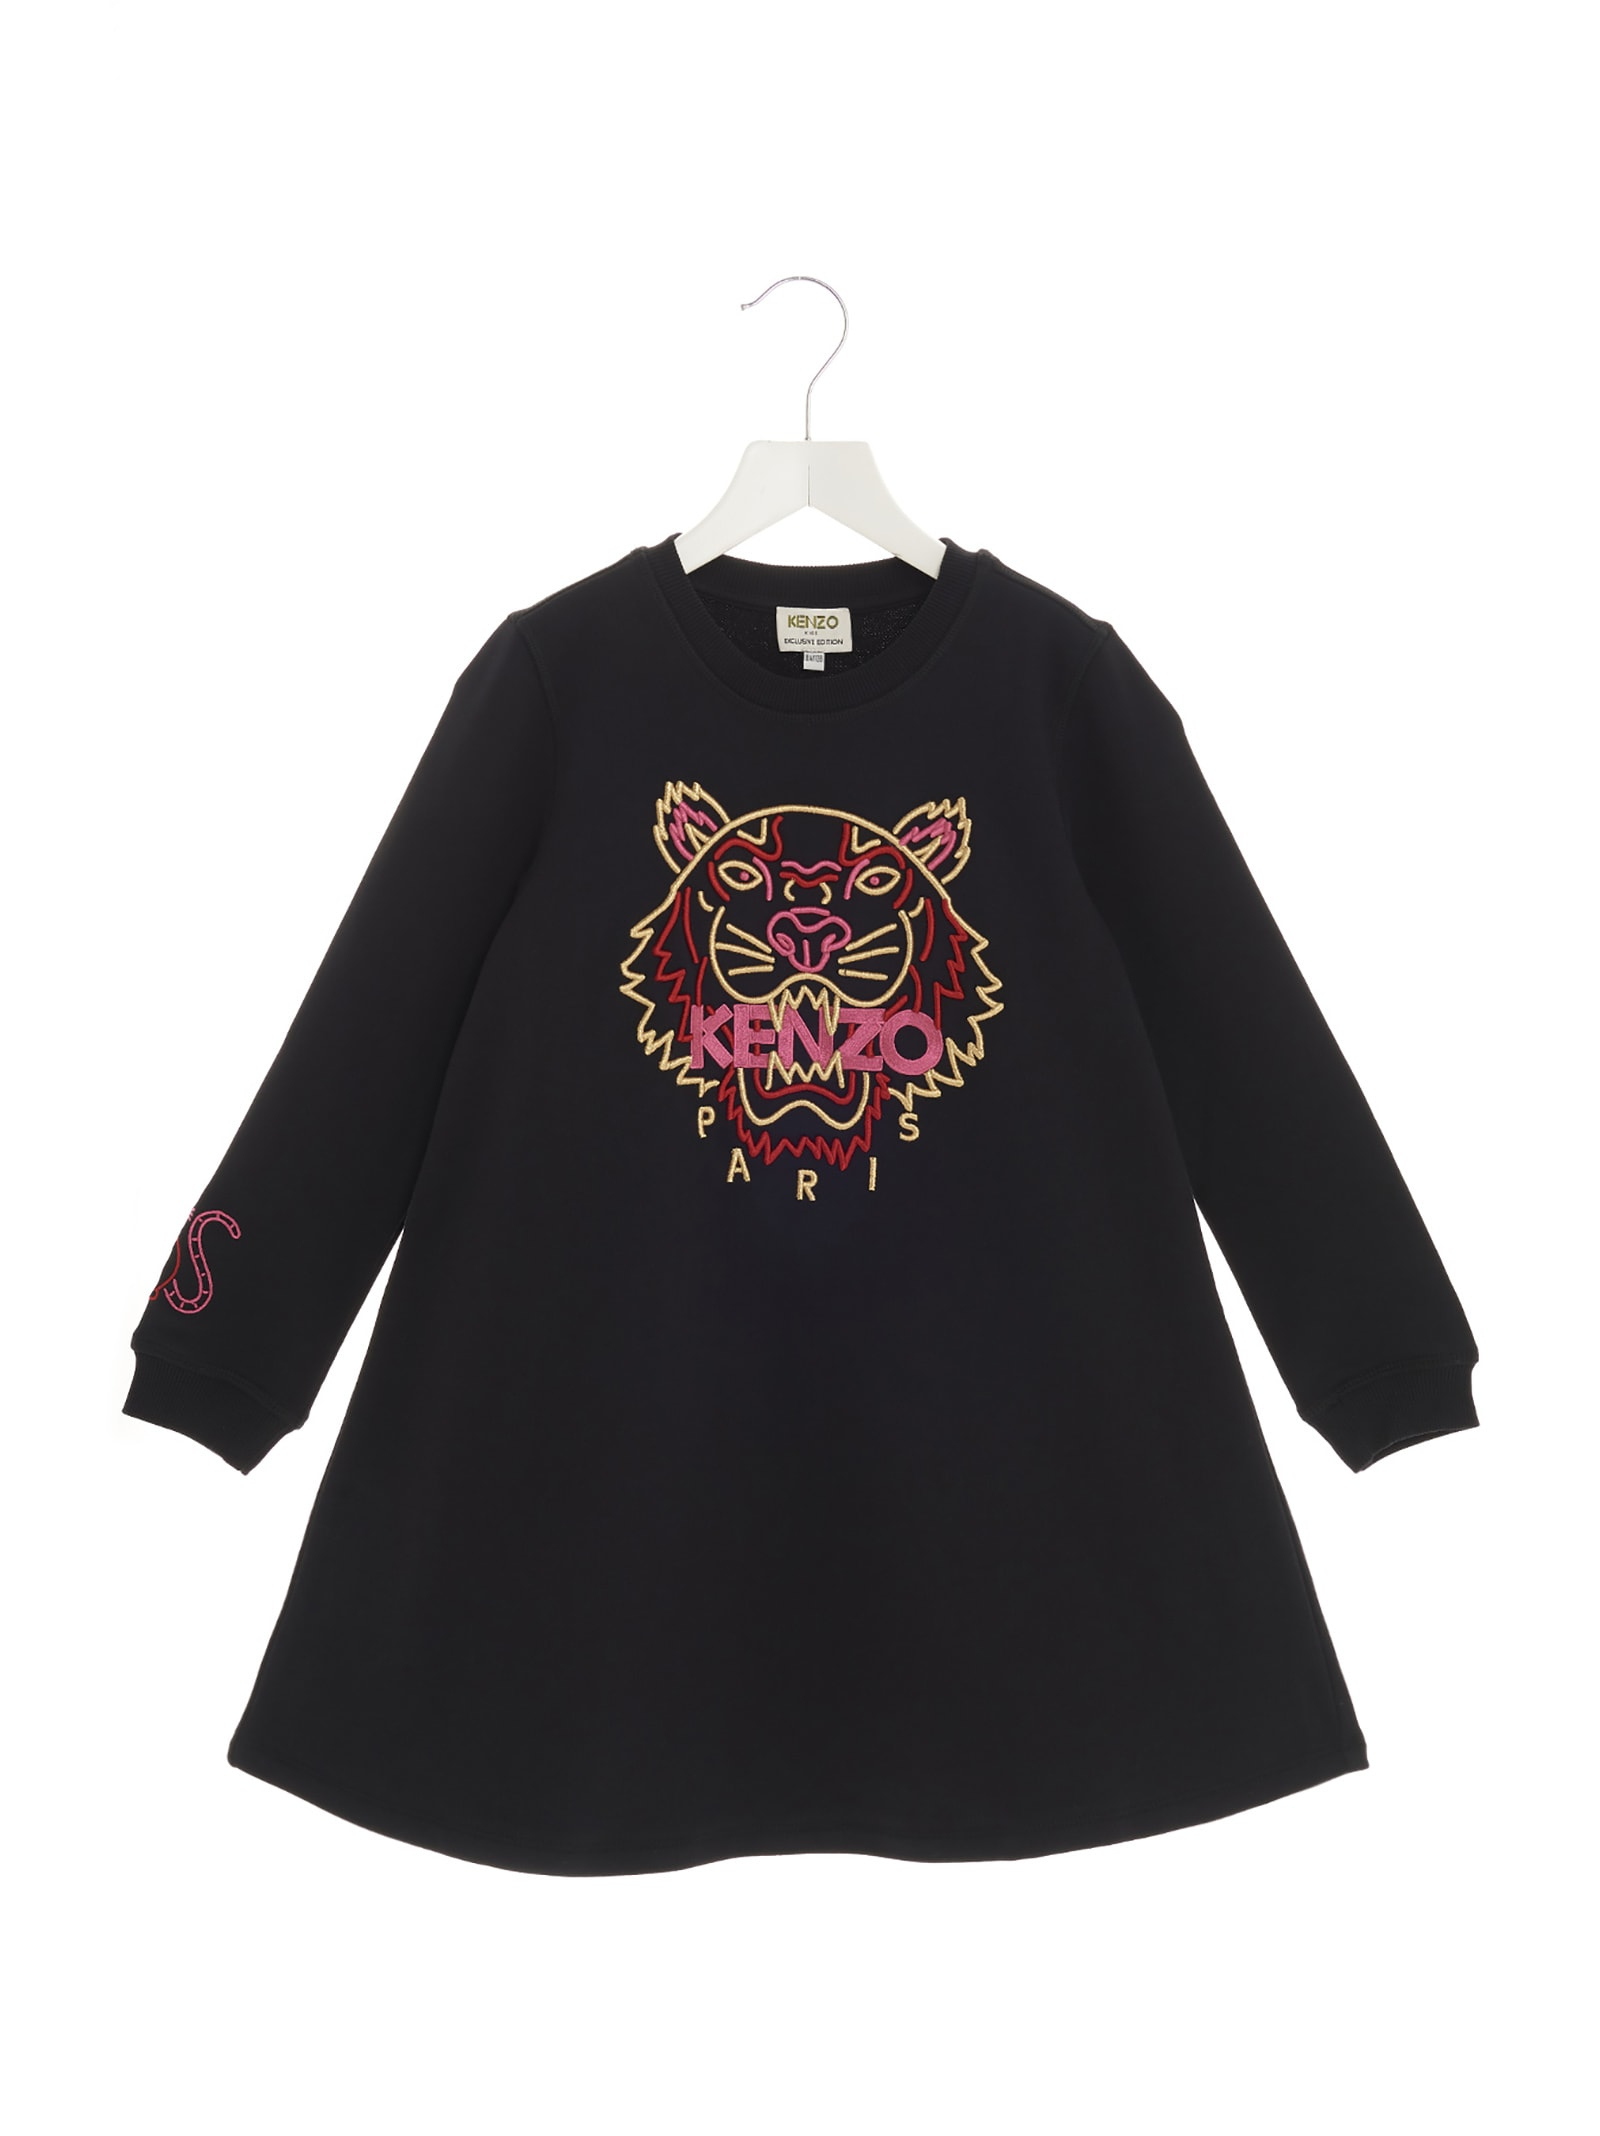 Buy Kenzo Kids chinese New Year 2020 Dress online, shop Kenzo Kids with free shipping